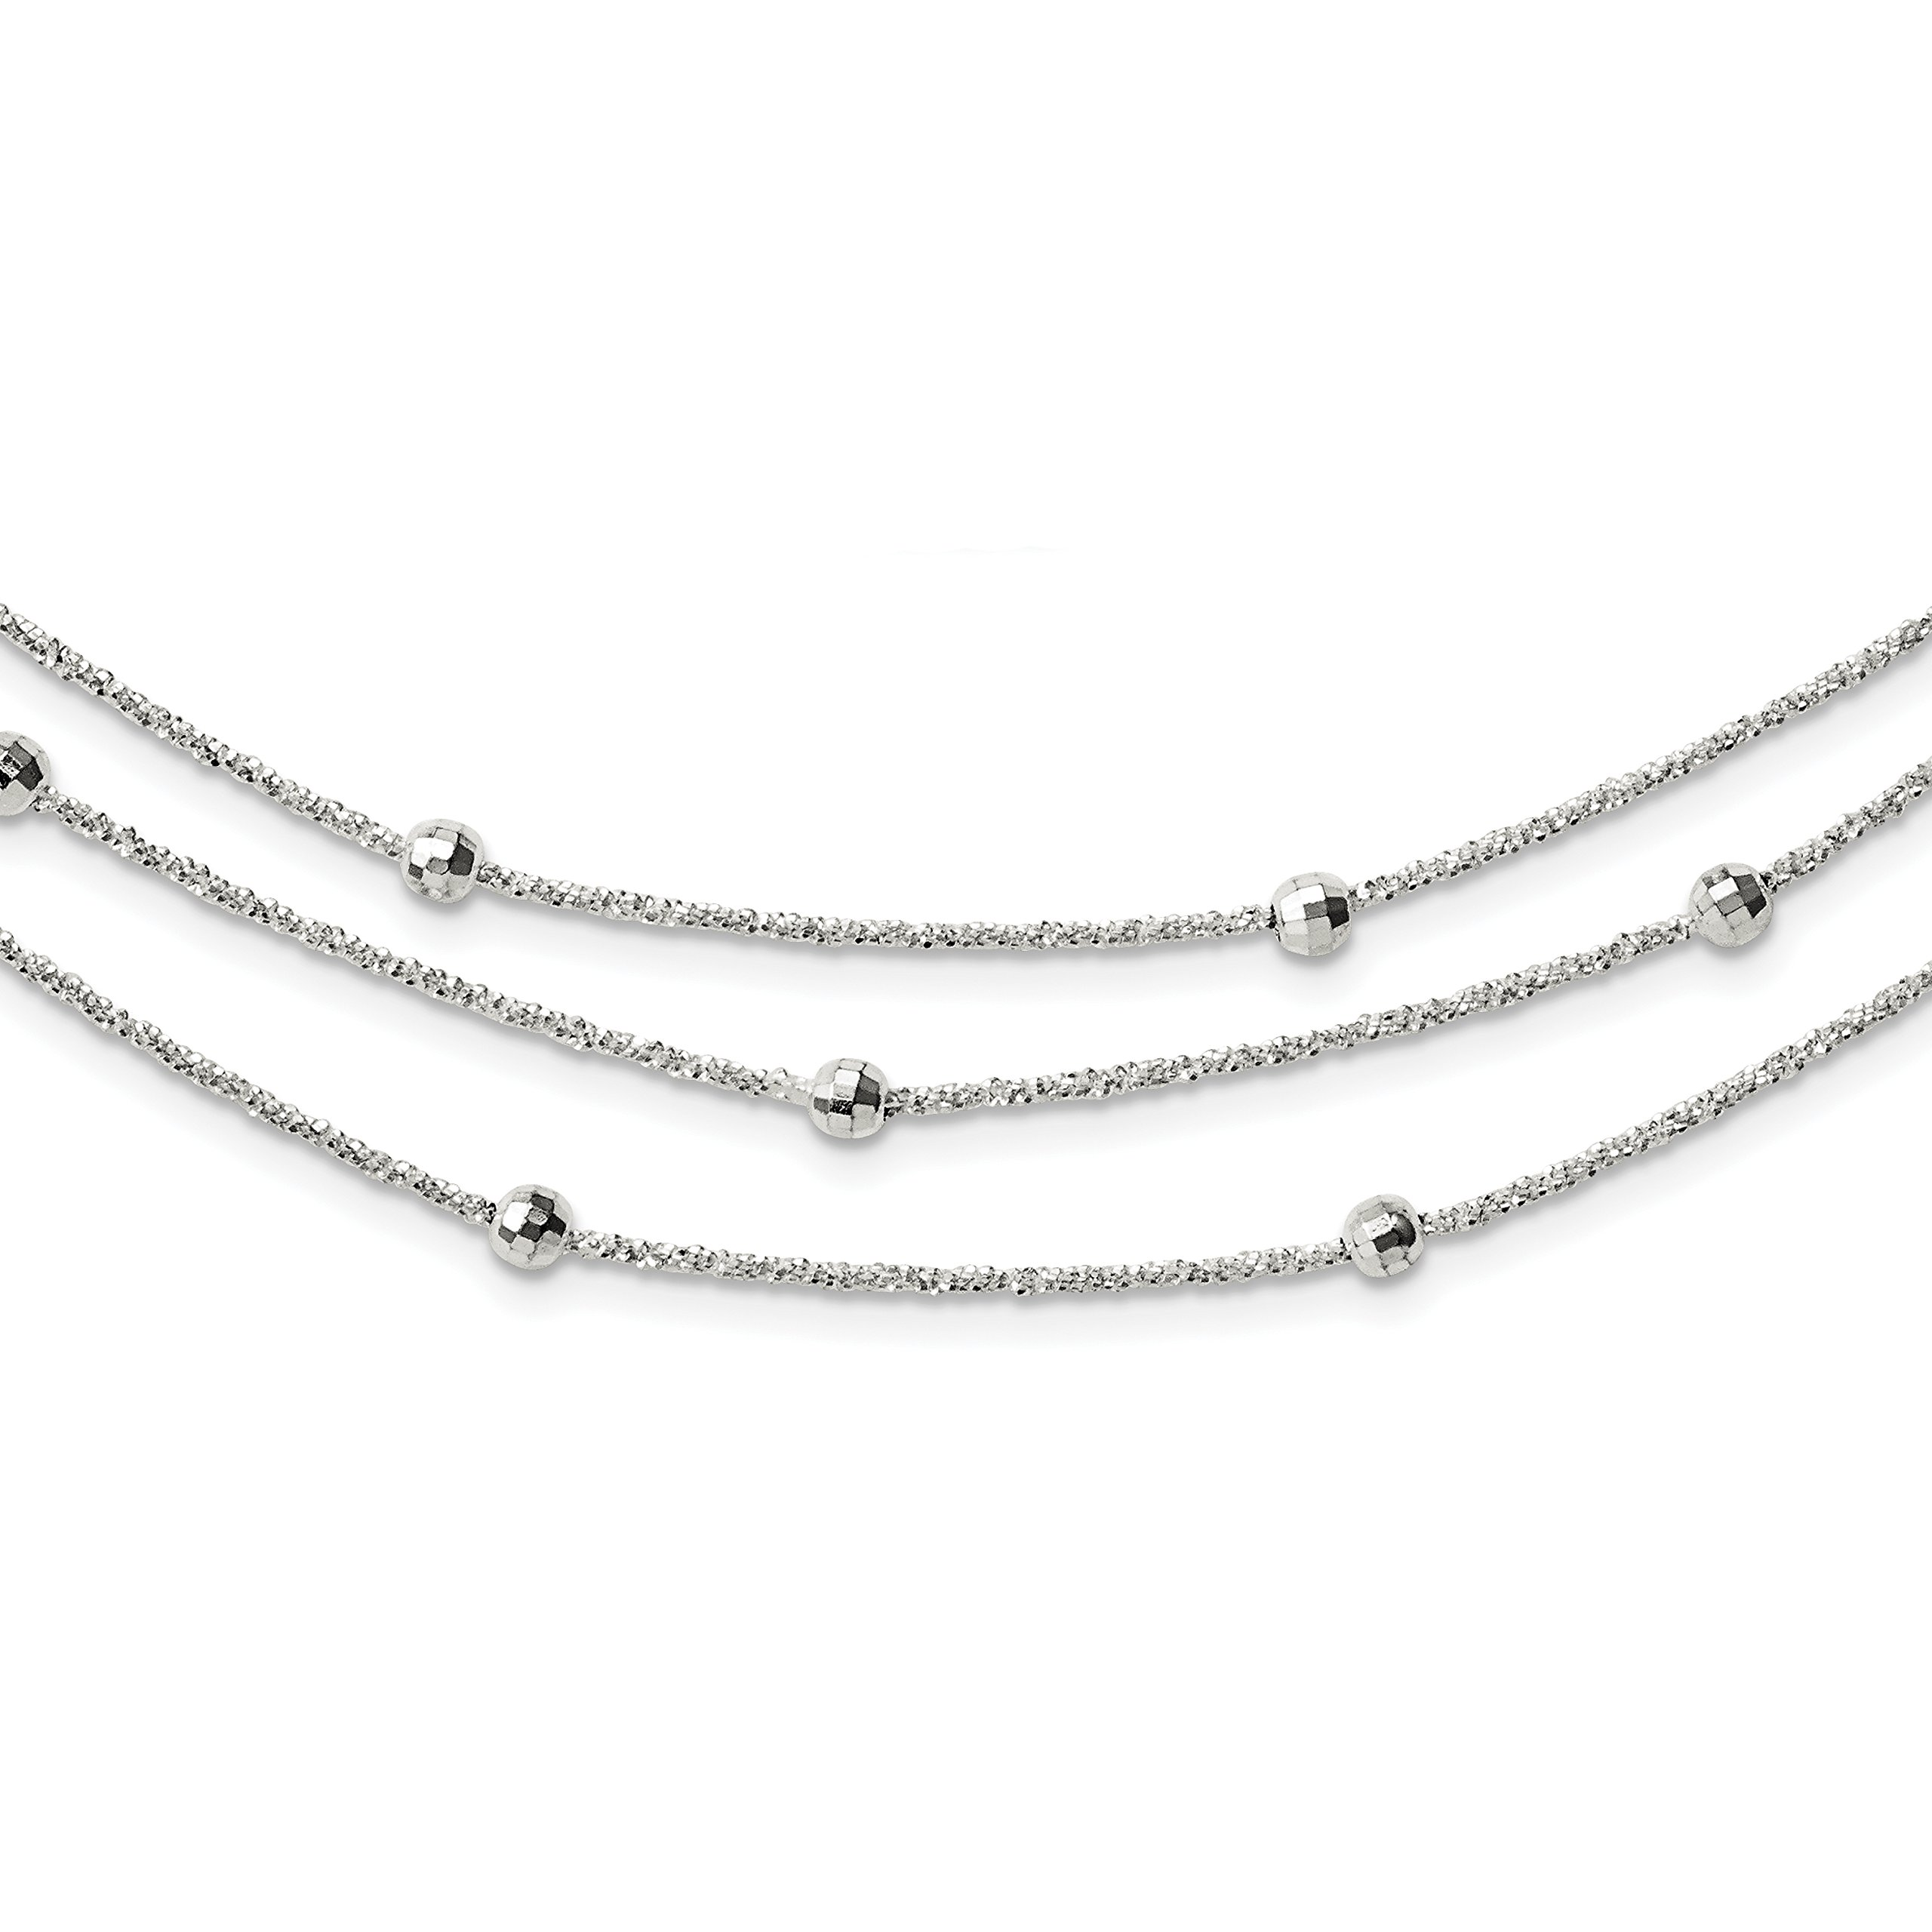 ICE CARATS 925 Sterling Silver 3 Strand Beaded 2in. Extension Chain Necklace Multi-str Bead Station Fine Jewelry Gift Set For Women Heart